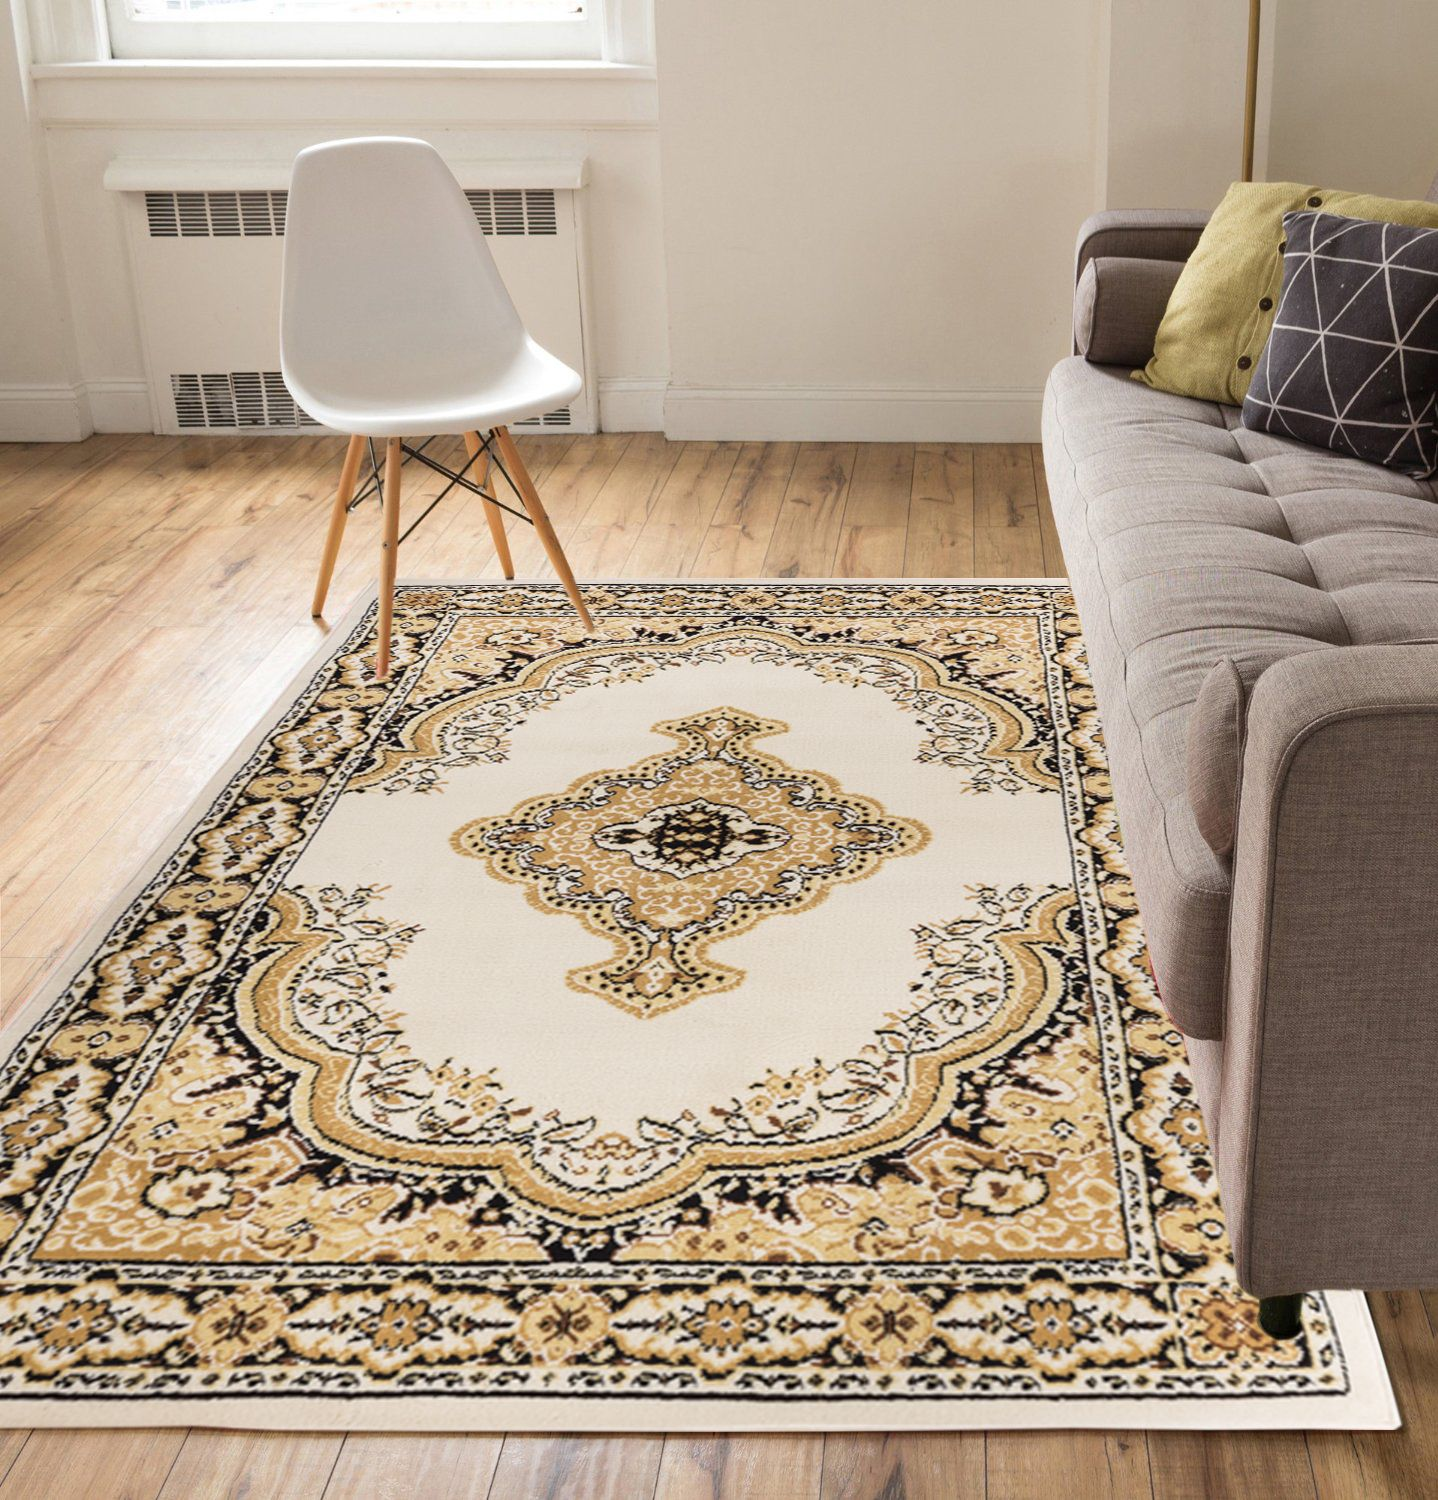 Well Woven Miami Tehran Traditional Medallion Red 5' x 7' Area Rug